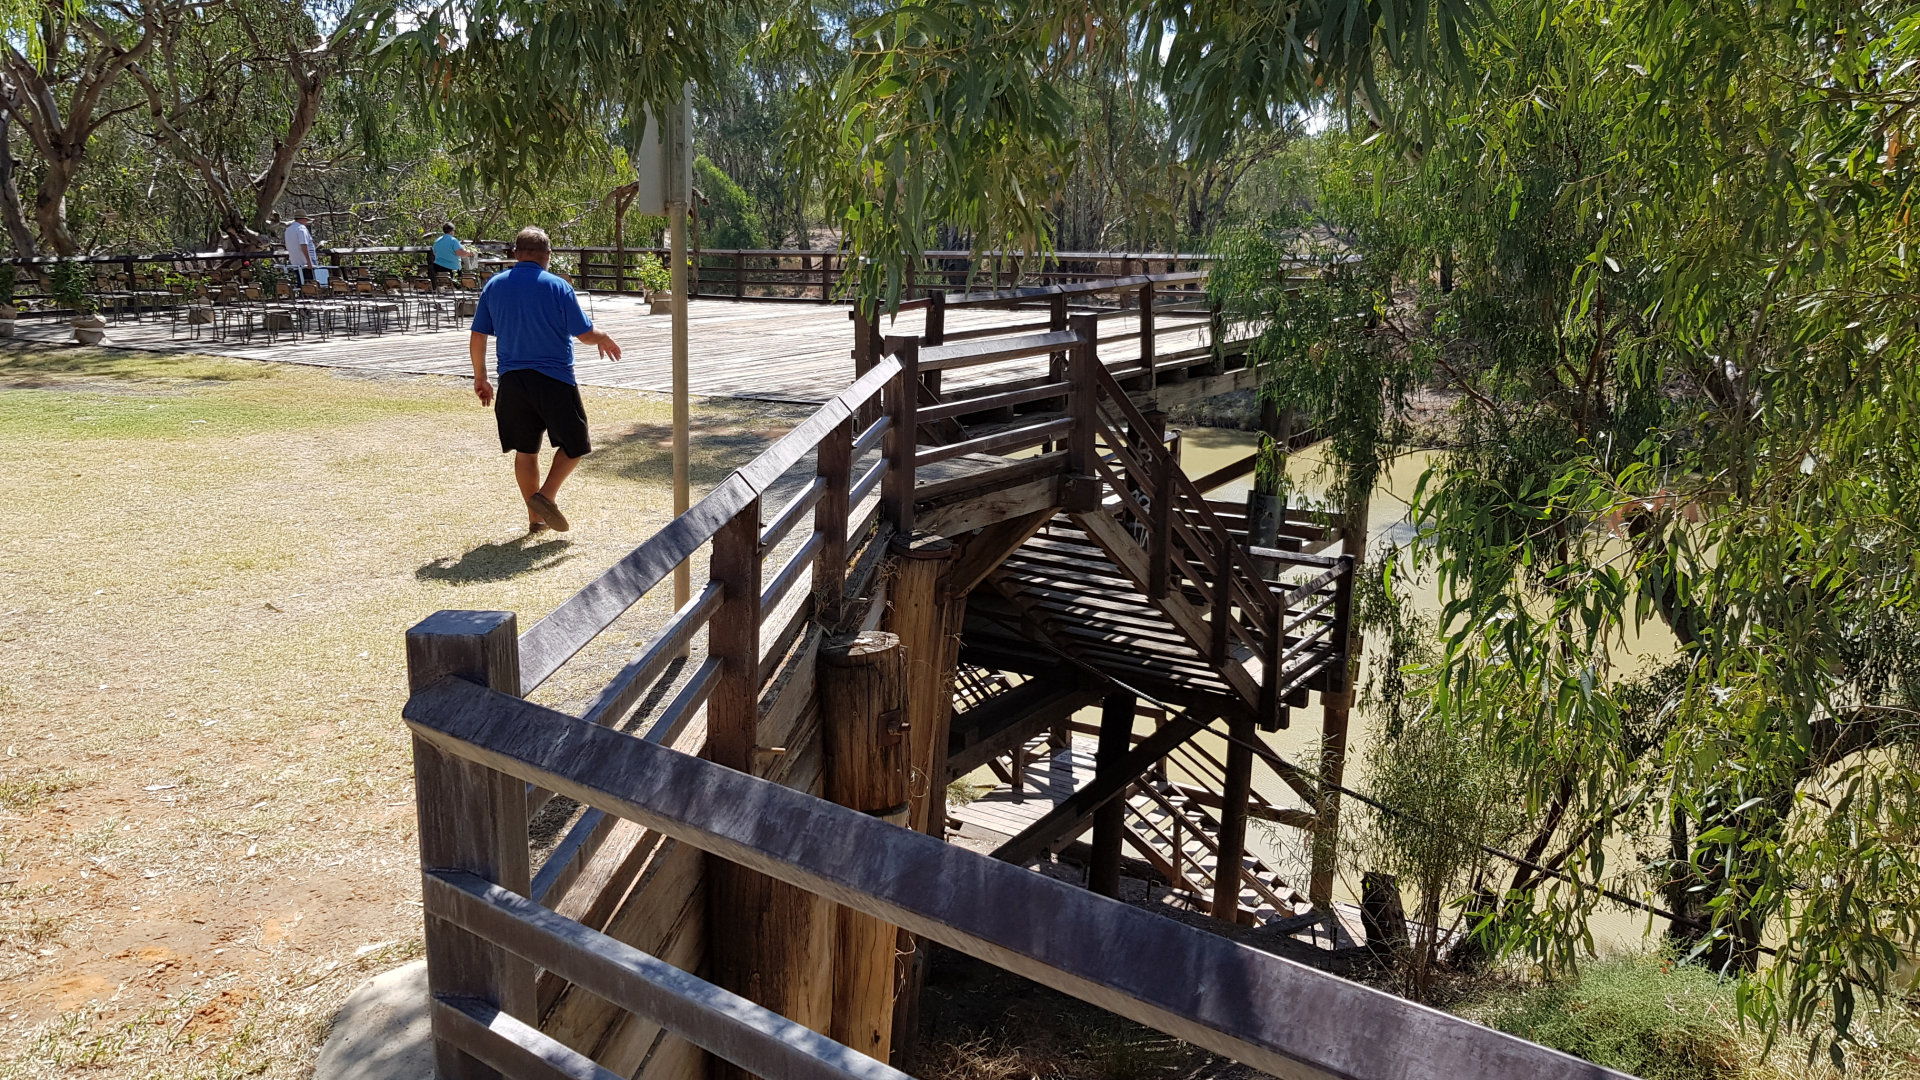 Top of The Bourke Wharf, a replica of the original wharves in Bourke. In the late 1850s, the Darling River was opened up as a key transport route, and river communities like Bourke grew as important transport centres.